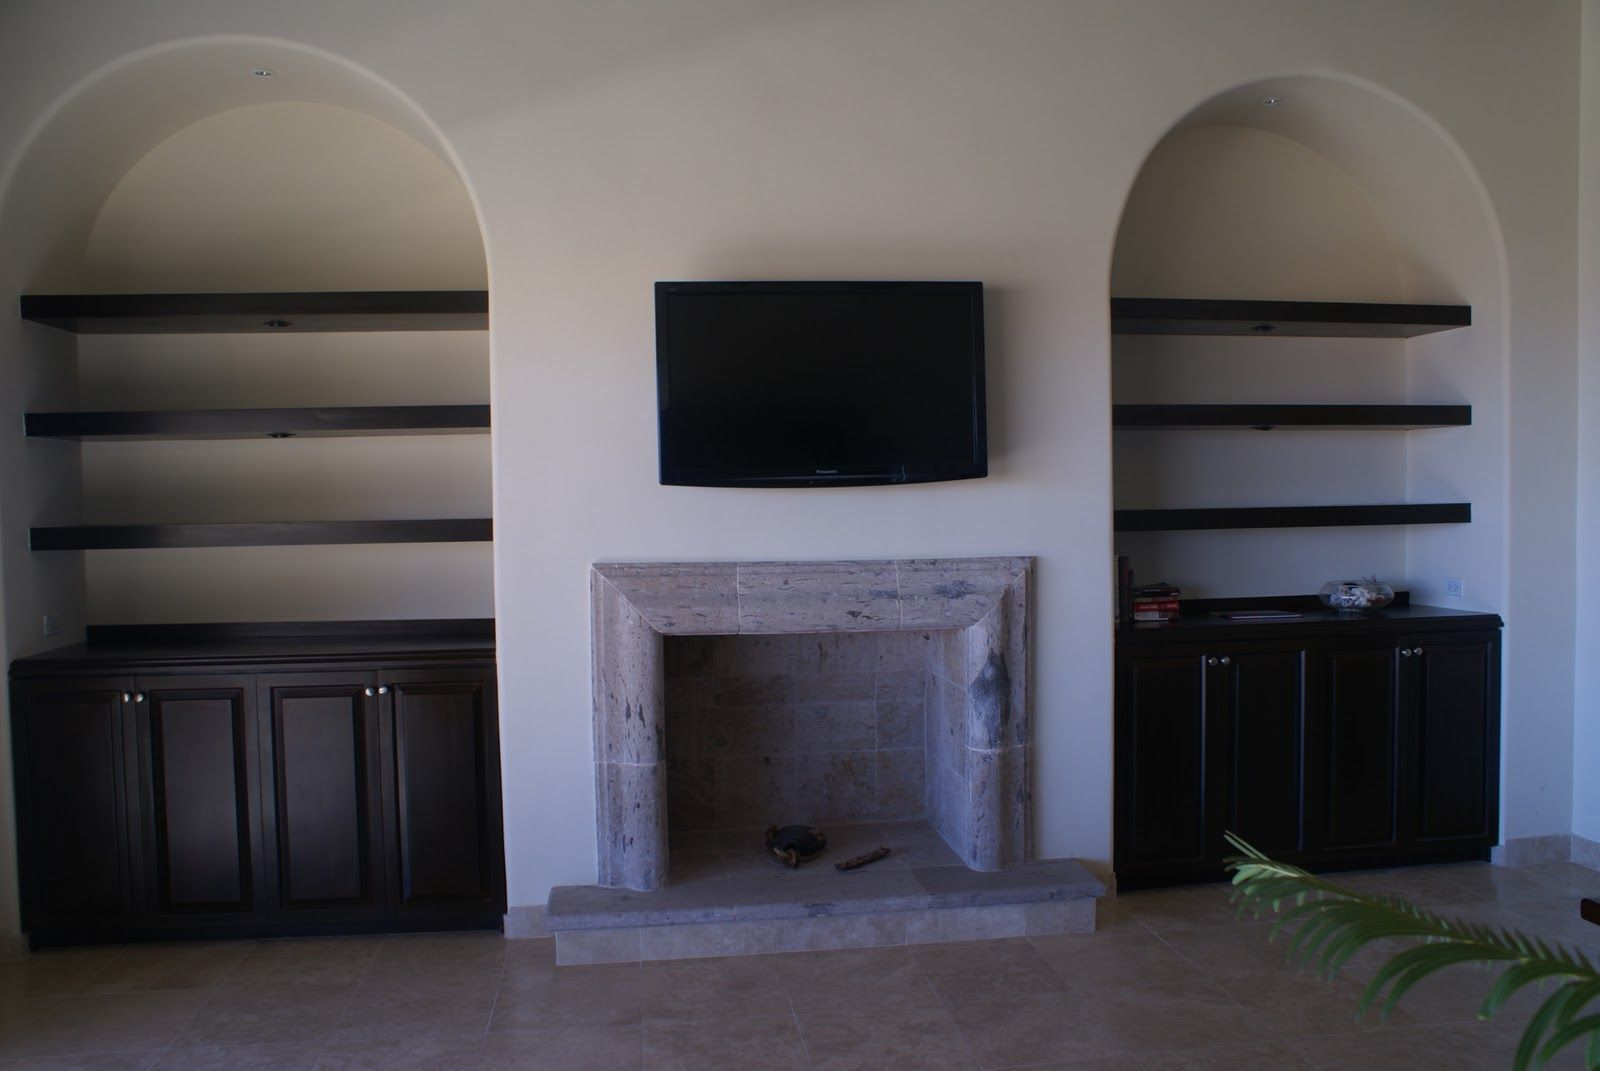 fireplace with bookshelves on each side lighting in the niches on rh pinterest com